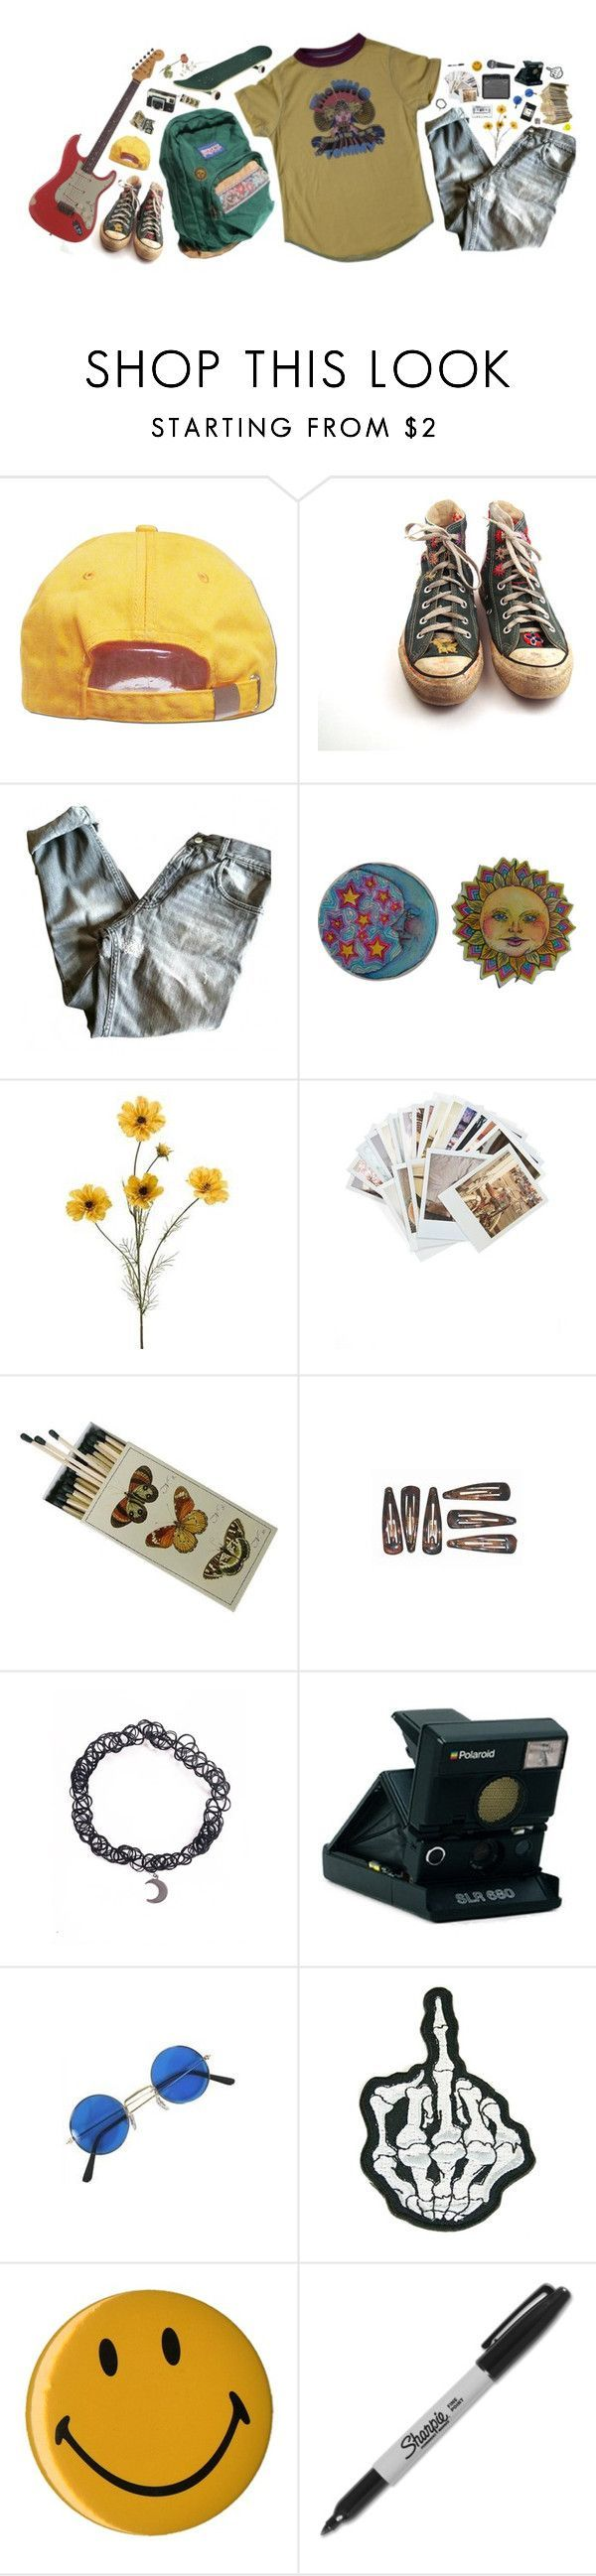 """you stole"" by xambergurlx ❤ liked on Polyvore featuring Converse, Golden Goose, Chronicle Books, Moleskine, Polaroid, Sharpie, Relic and vintage"